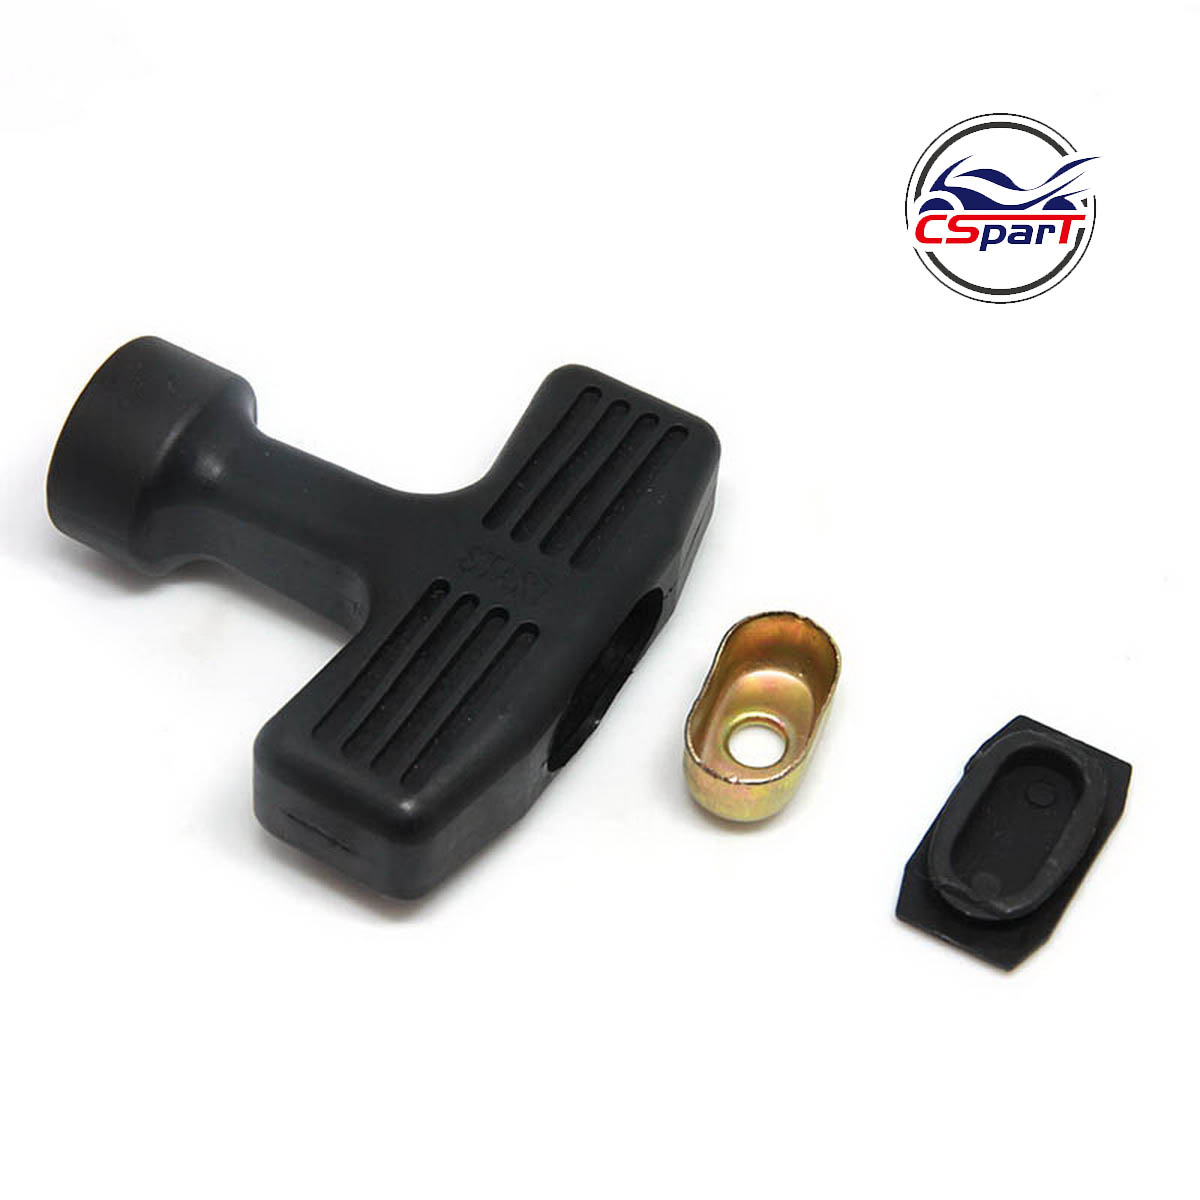 Recoil Starter Pull Handle For Polaris  - 1996-2008 Sportsman 500